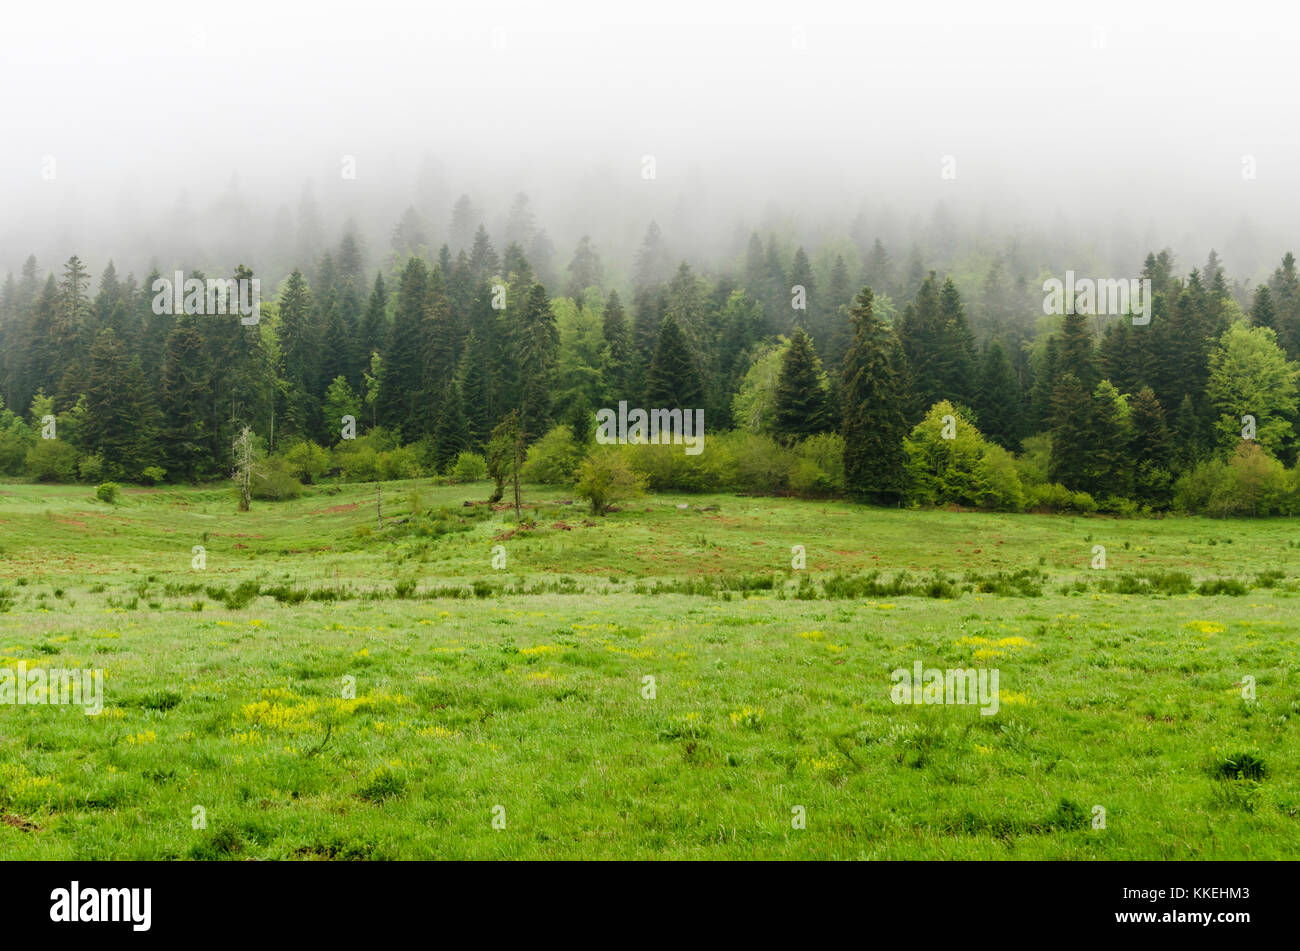 Conifer trees on a foggy morning in the Languedoc region of France - Stock Image